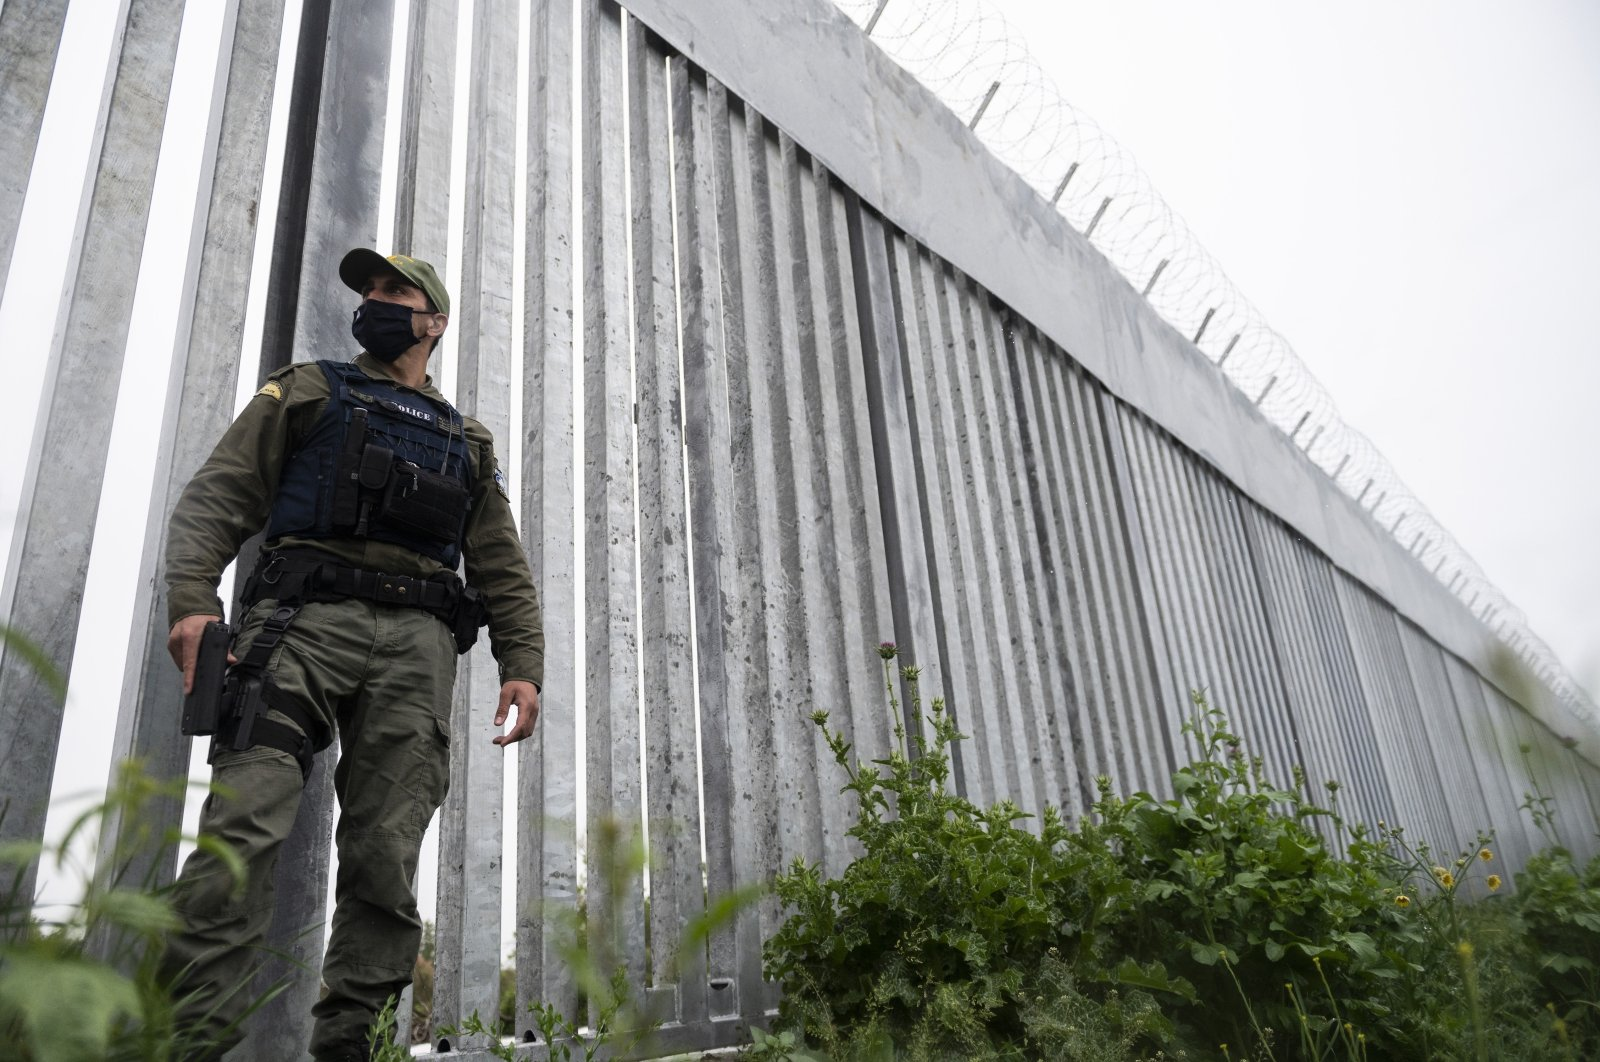 A police officer patrols alongside a steel wall at Evros river, near the village of Poros, at the Greek -Turkish border, Greece, May 21, 2021. (AP Photo)